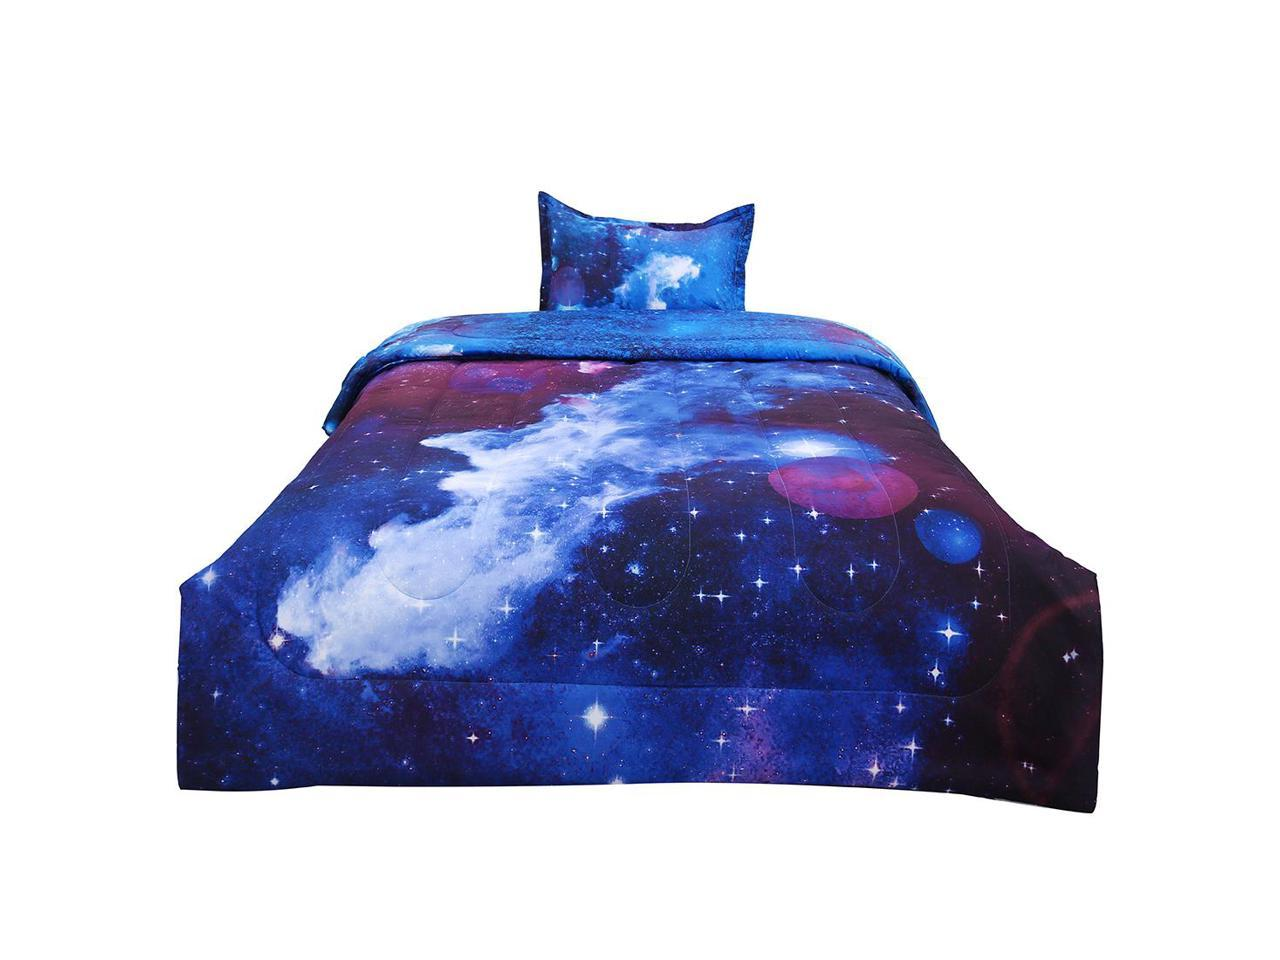 Twin 2 Piece Galaxies Dark Blue Comforter Sets 3d Space Themed All Season Down Alternative Quilted Duvet Reversible Design Includes 1 Comforter 1 Pillow Case Newegg Com